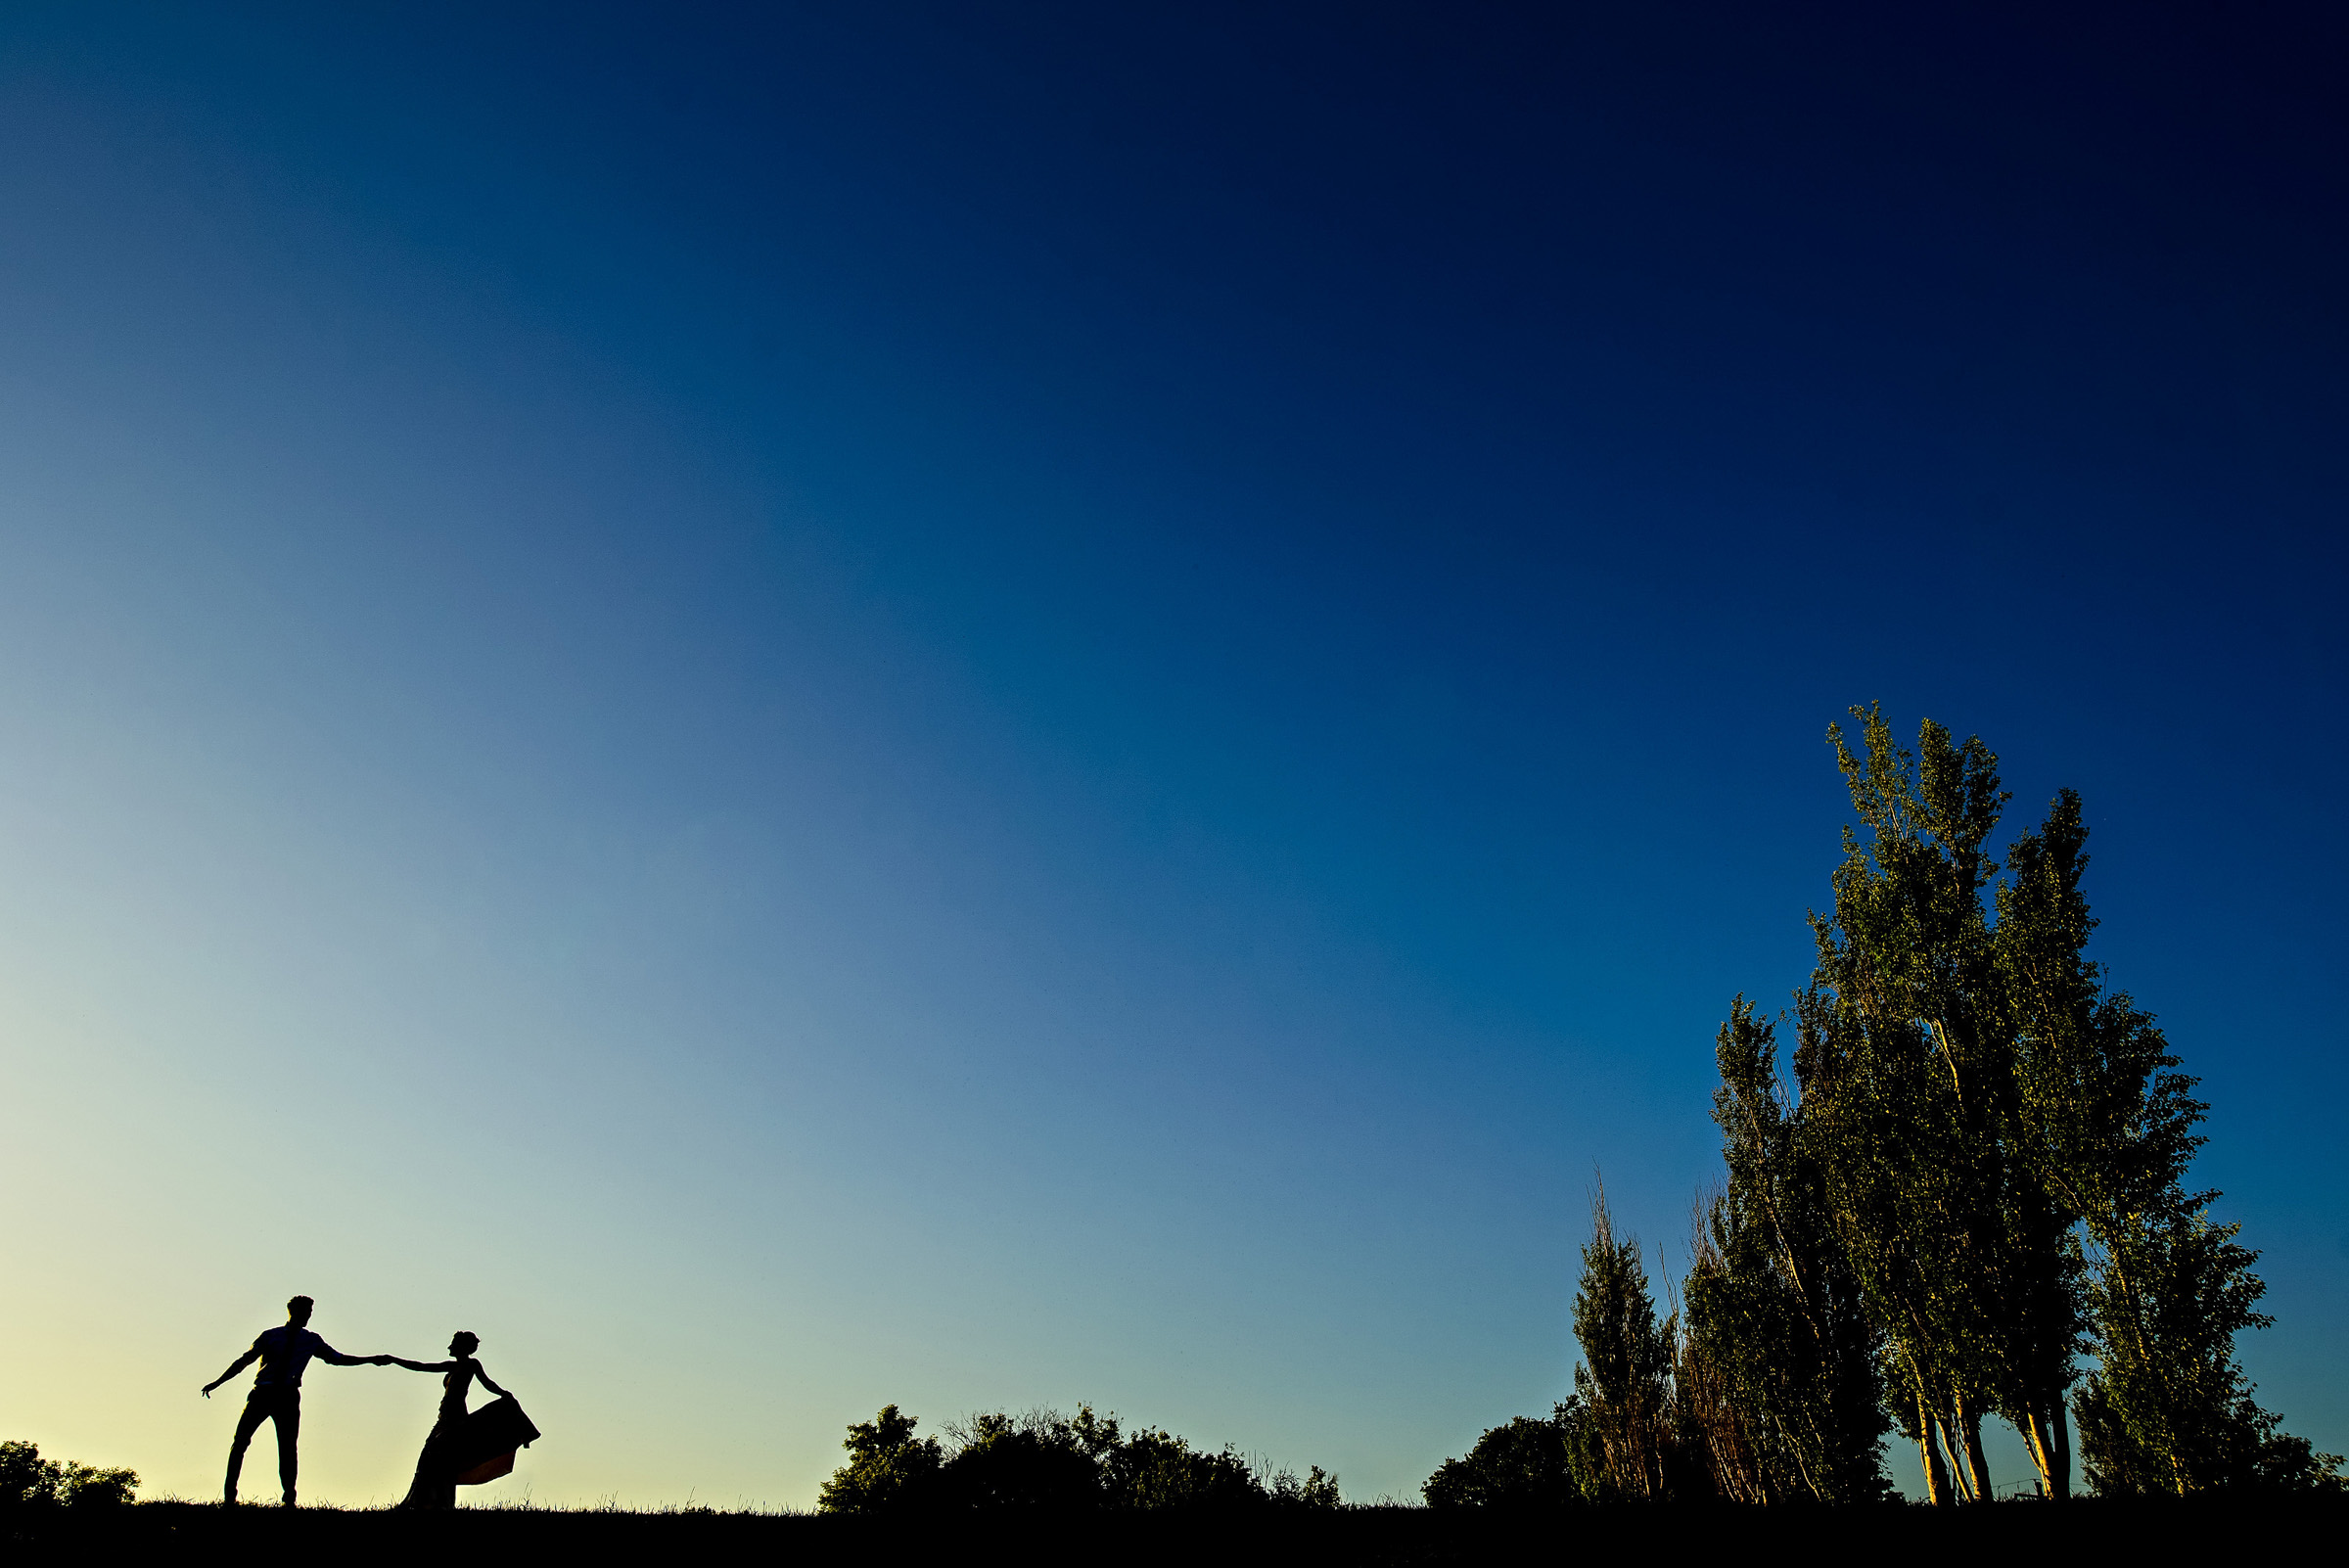 Couple silhouette against blue sky - photo by Moore Photography